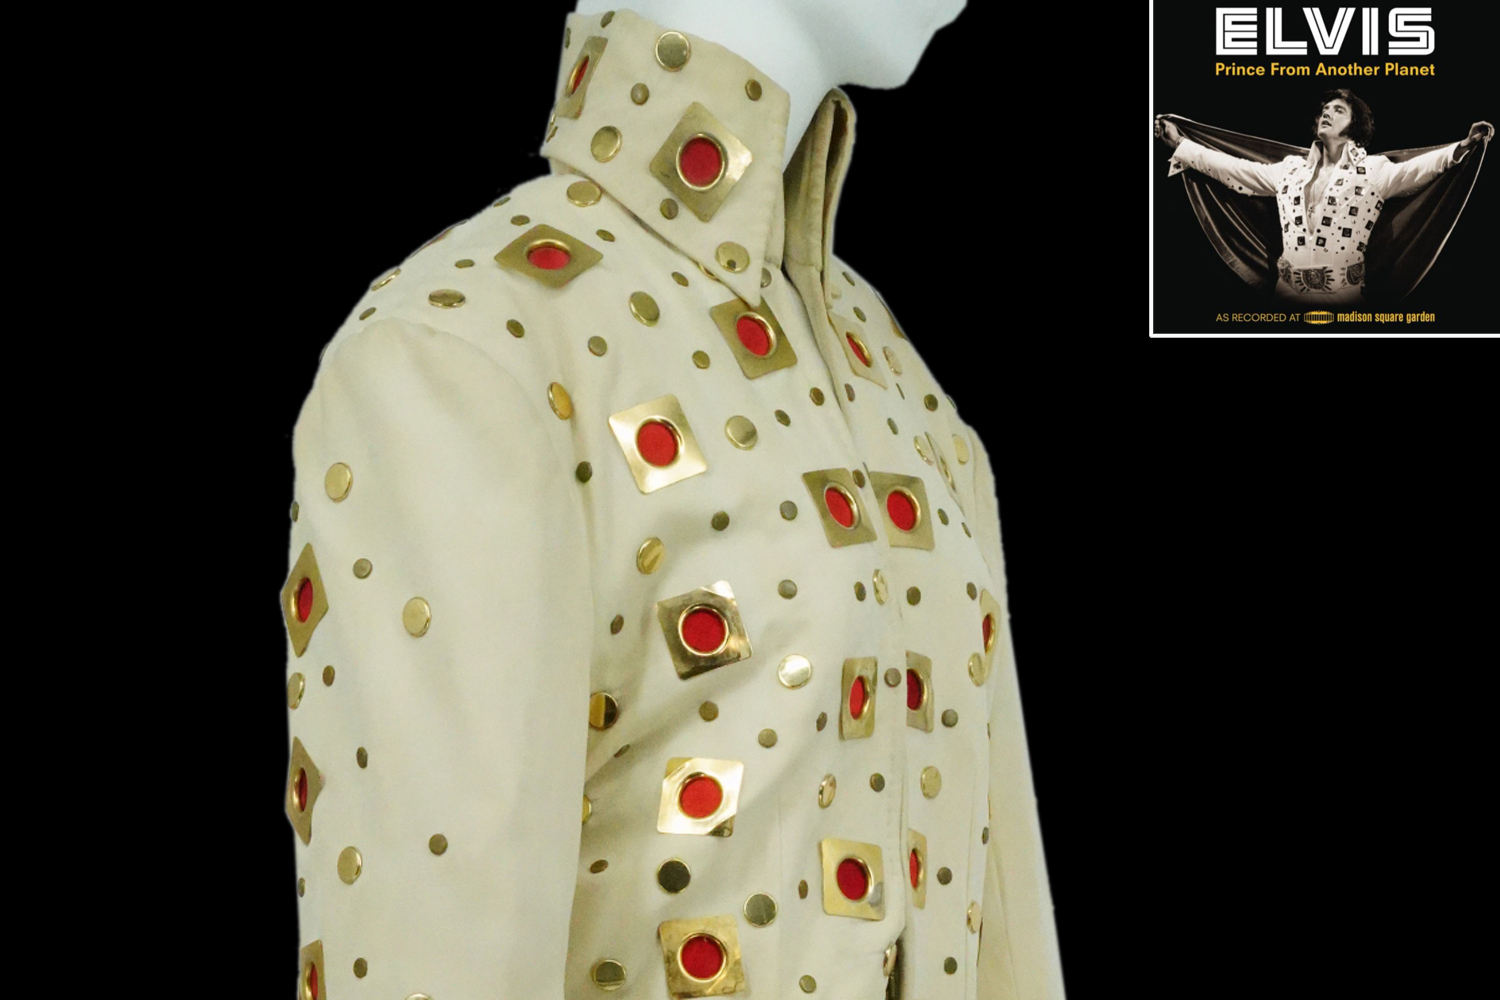 Elvis Presley's iconic jumpsuit and cape he wore in a string of concerts at Madison Square Garden in 1972